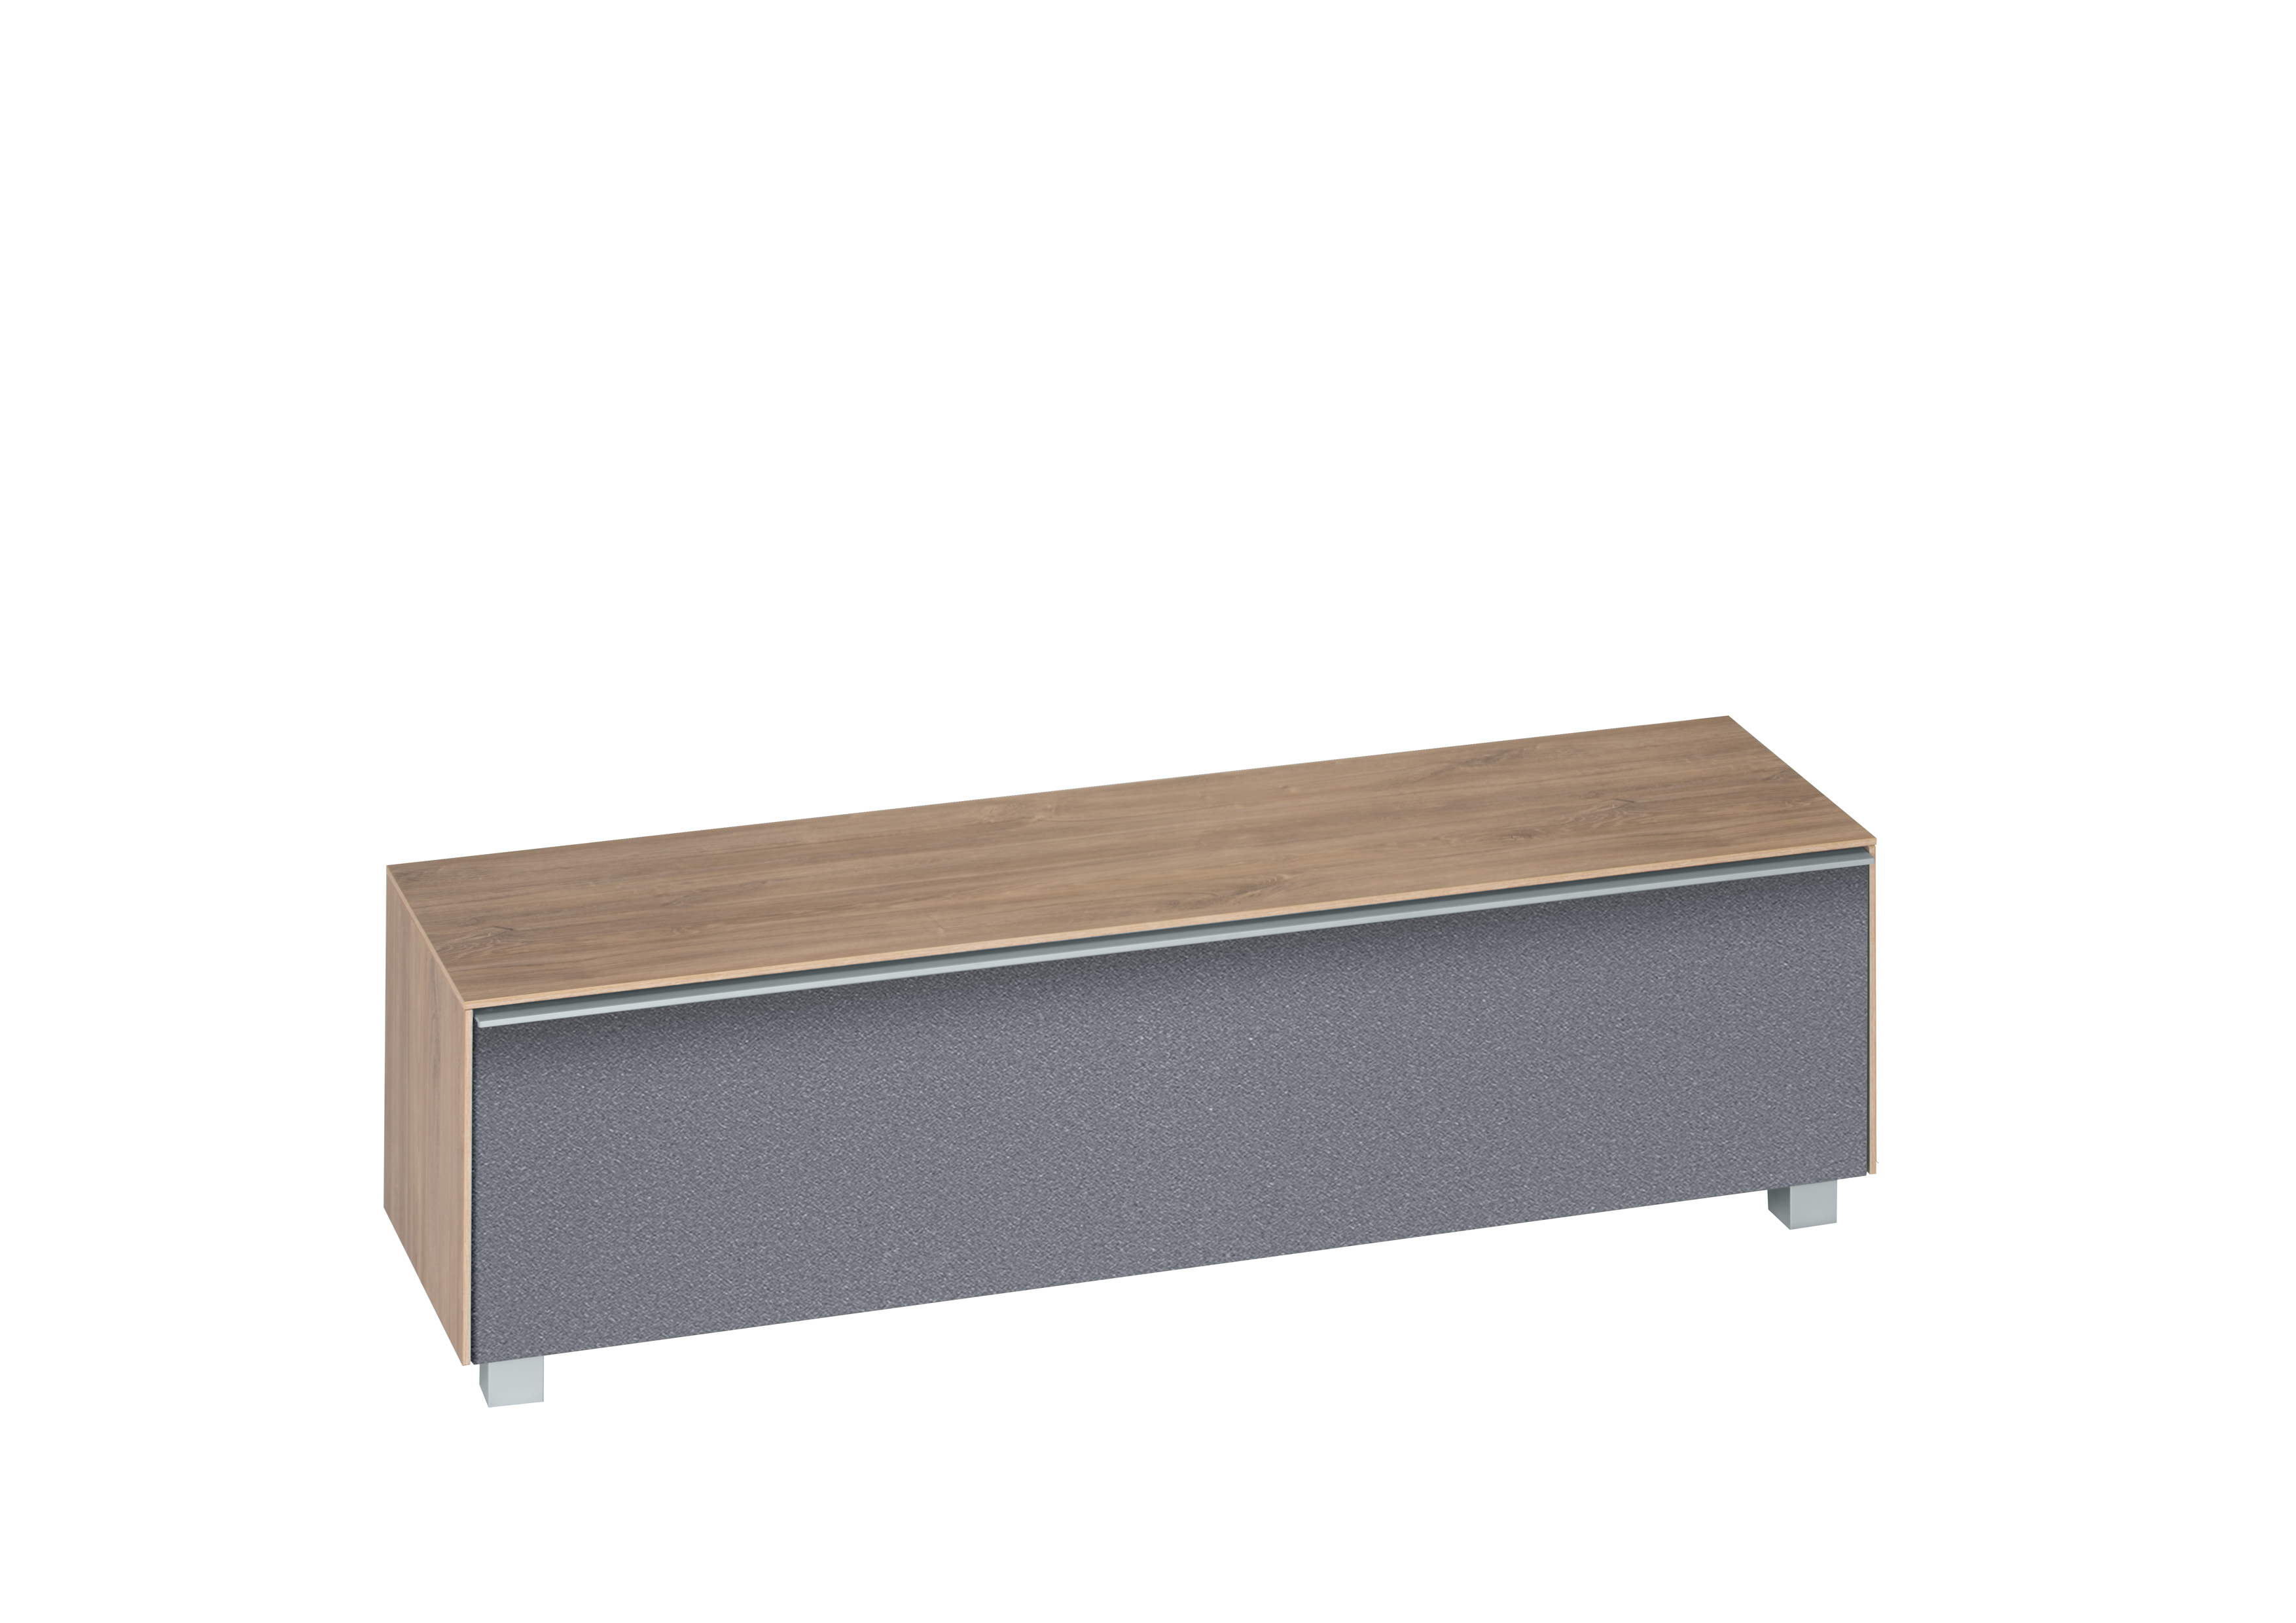 lowboard 160 cm breit soundconcept wood von maja riviera eiche grau. Black Bedroom Furniture Sets. Home Design Ideas